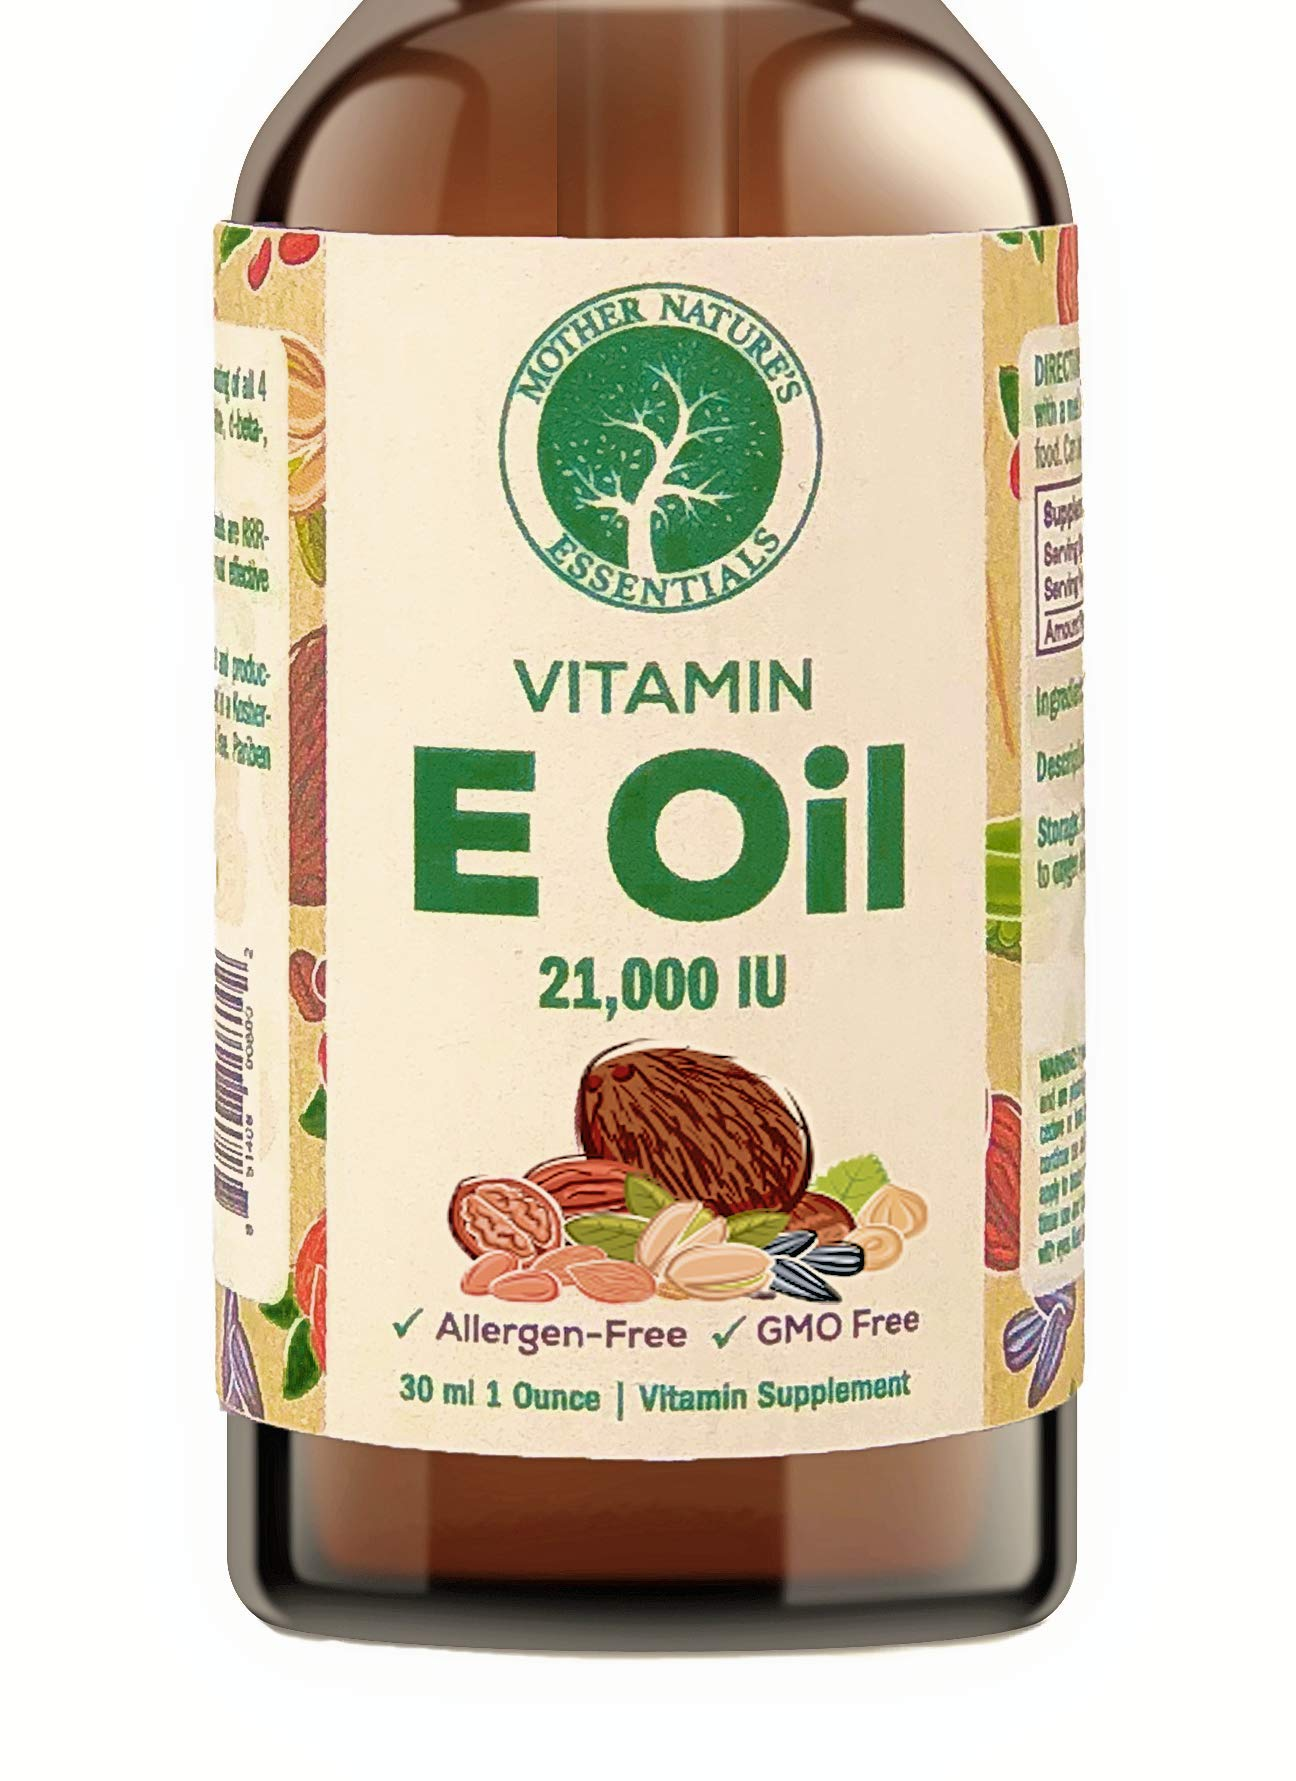 Pure Vitamin E Oil 21,000 IU, 100% Natural. Perfect for All Skin Types. Can be Used Daily to Protect and Hydrate The Skin. So Pure it can be Taken orally.